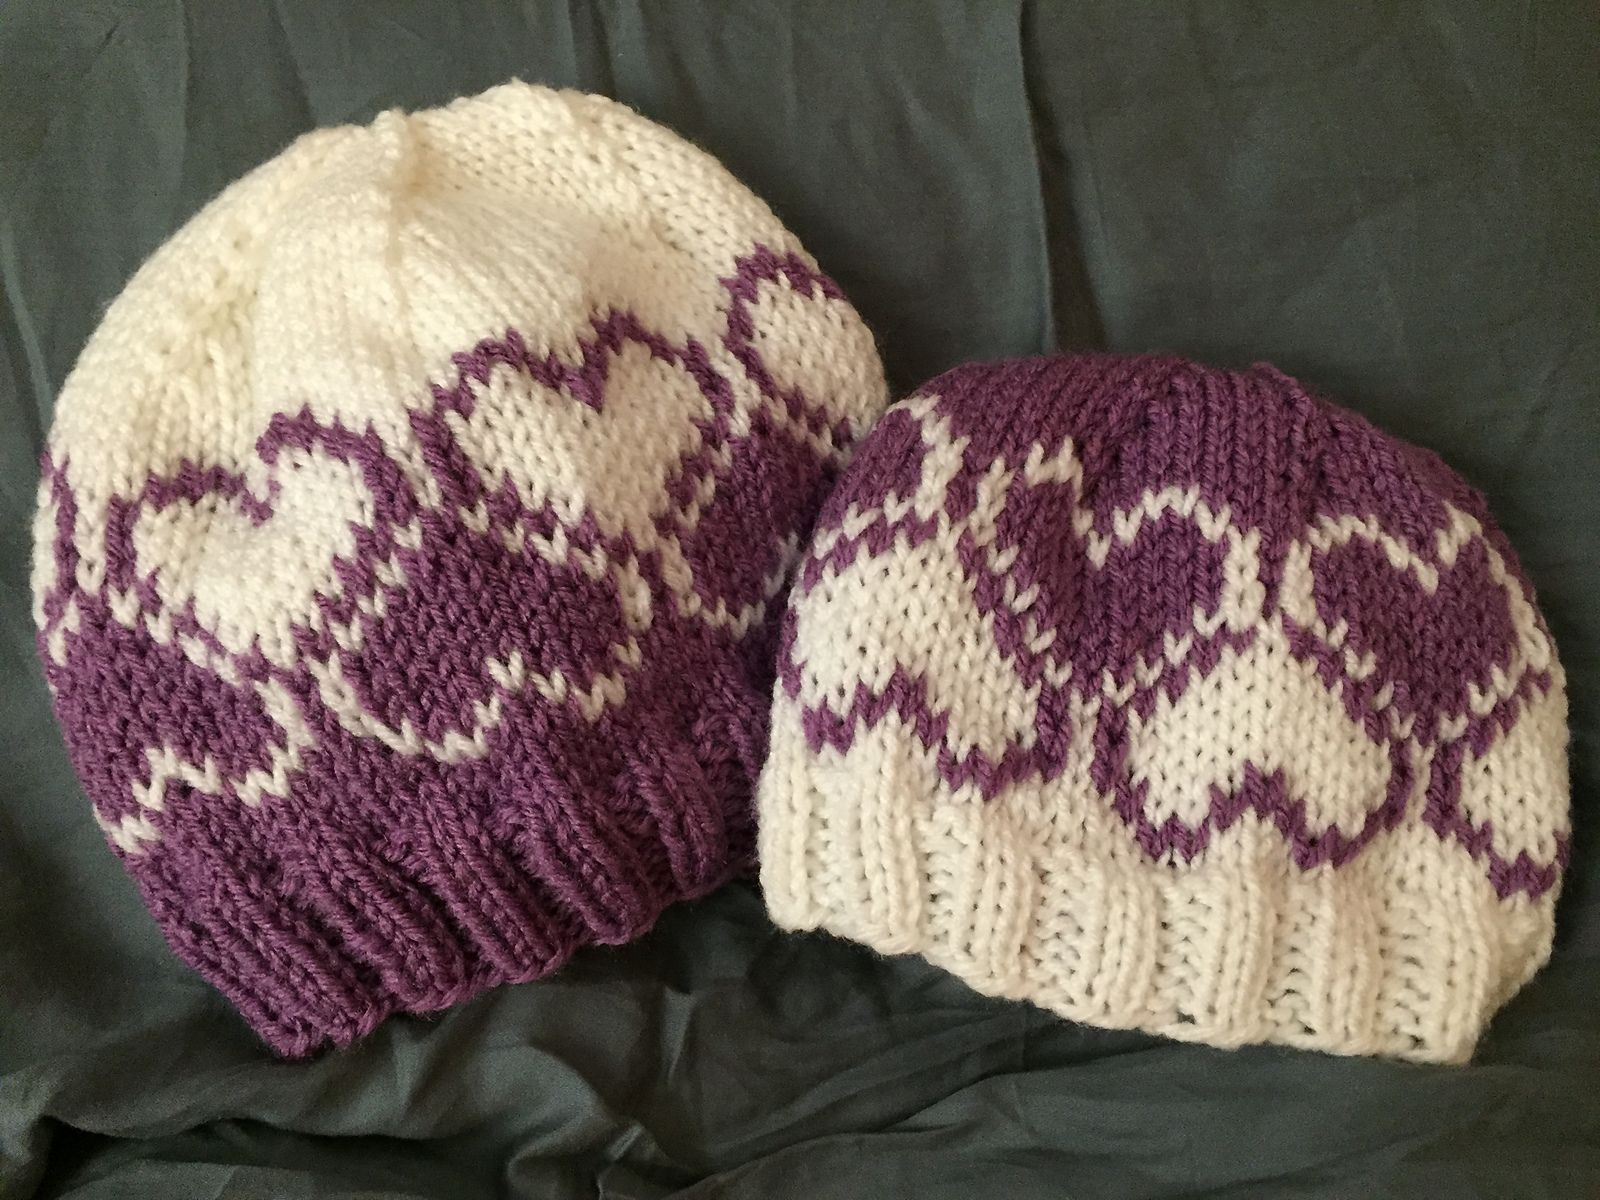 Heart knitting patterns knitting patterns child and winter free knitting pattern for love the winter hat emily dormiers beanie features a heart motif bankloansurffo Image collections